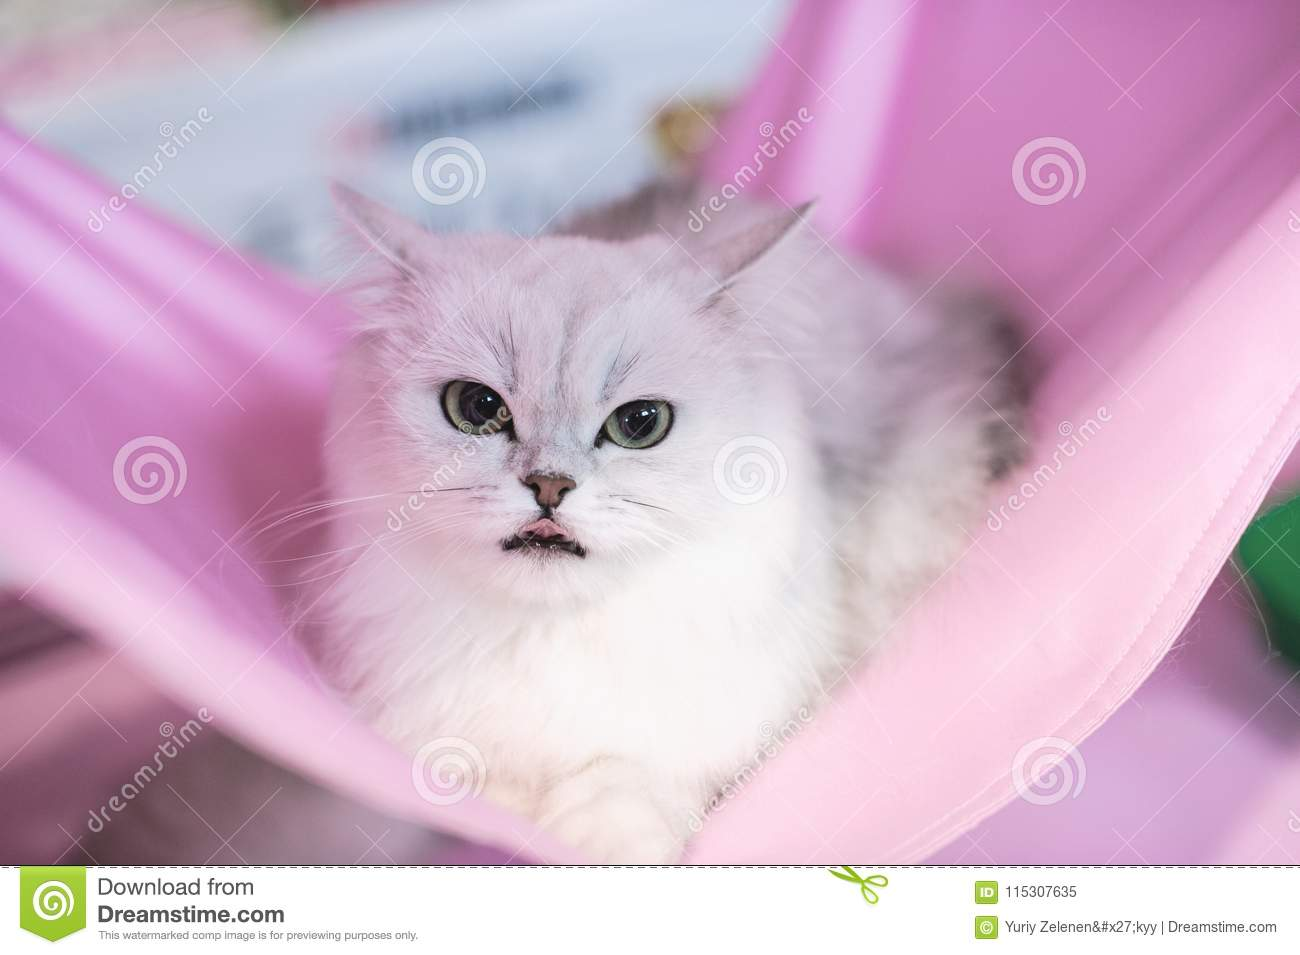 Funny cats in the basket on the cloth